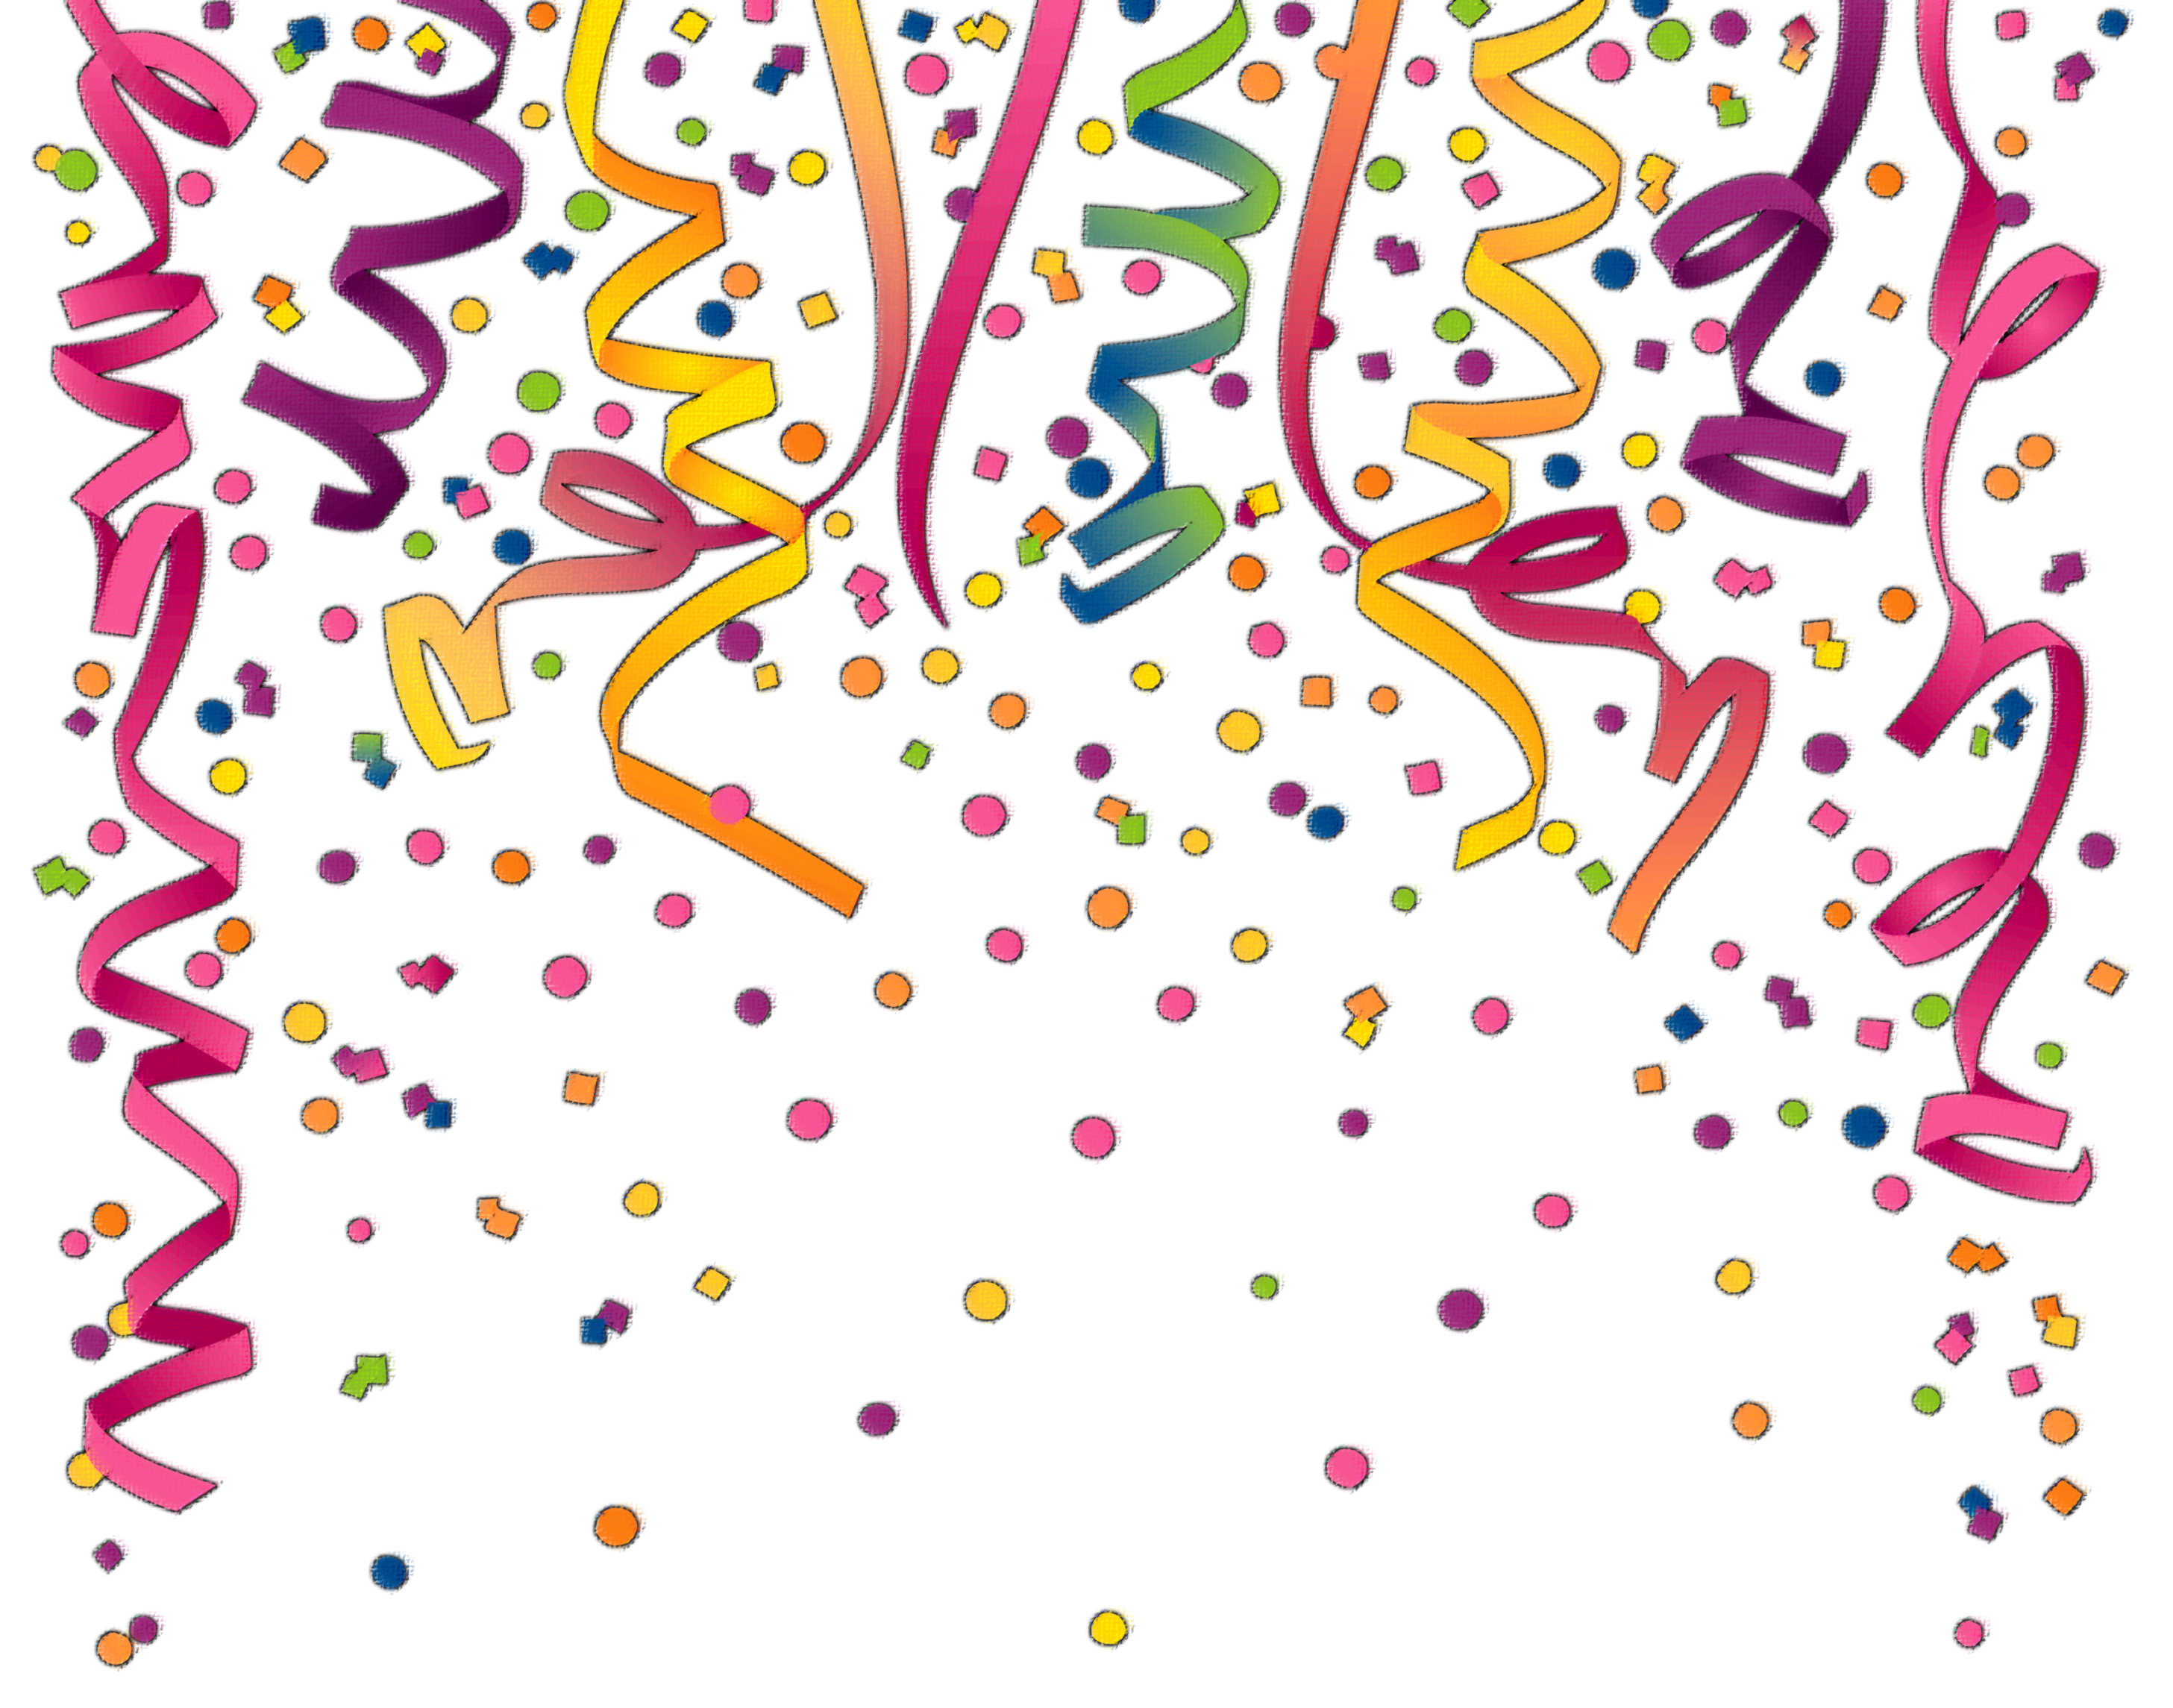 Confetti clipart #5, Download drawings